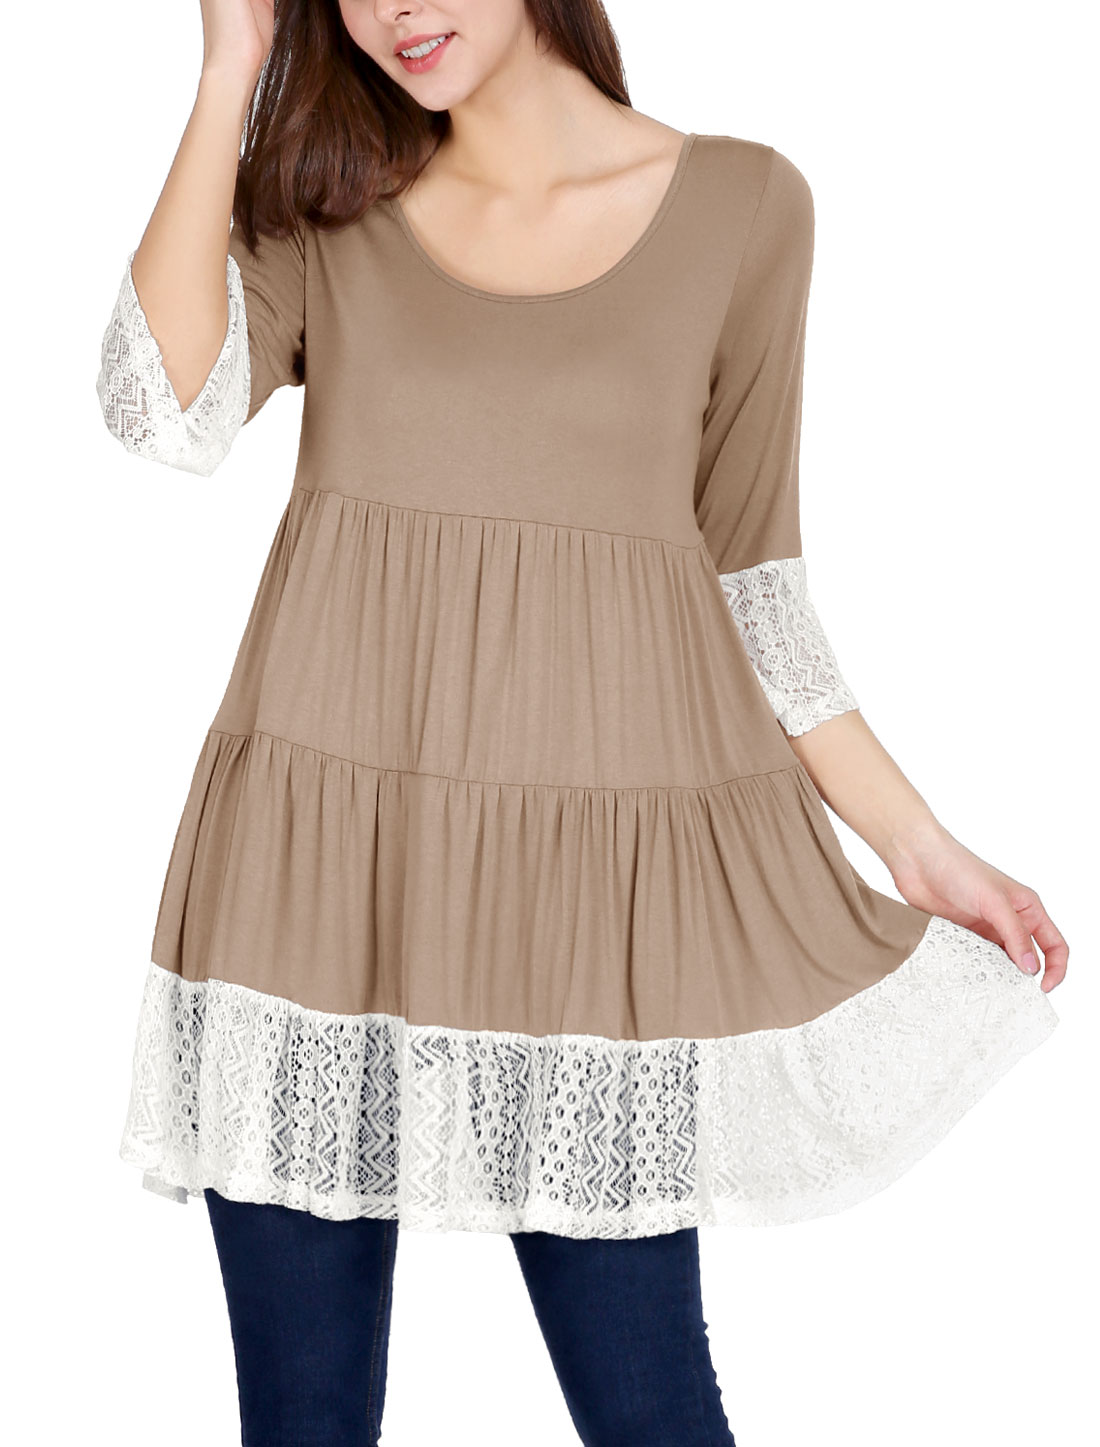 Women Trumpet Sleeves Lace Panel Ruffle Hem Loose Tiered Tunic Top Brown S